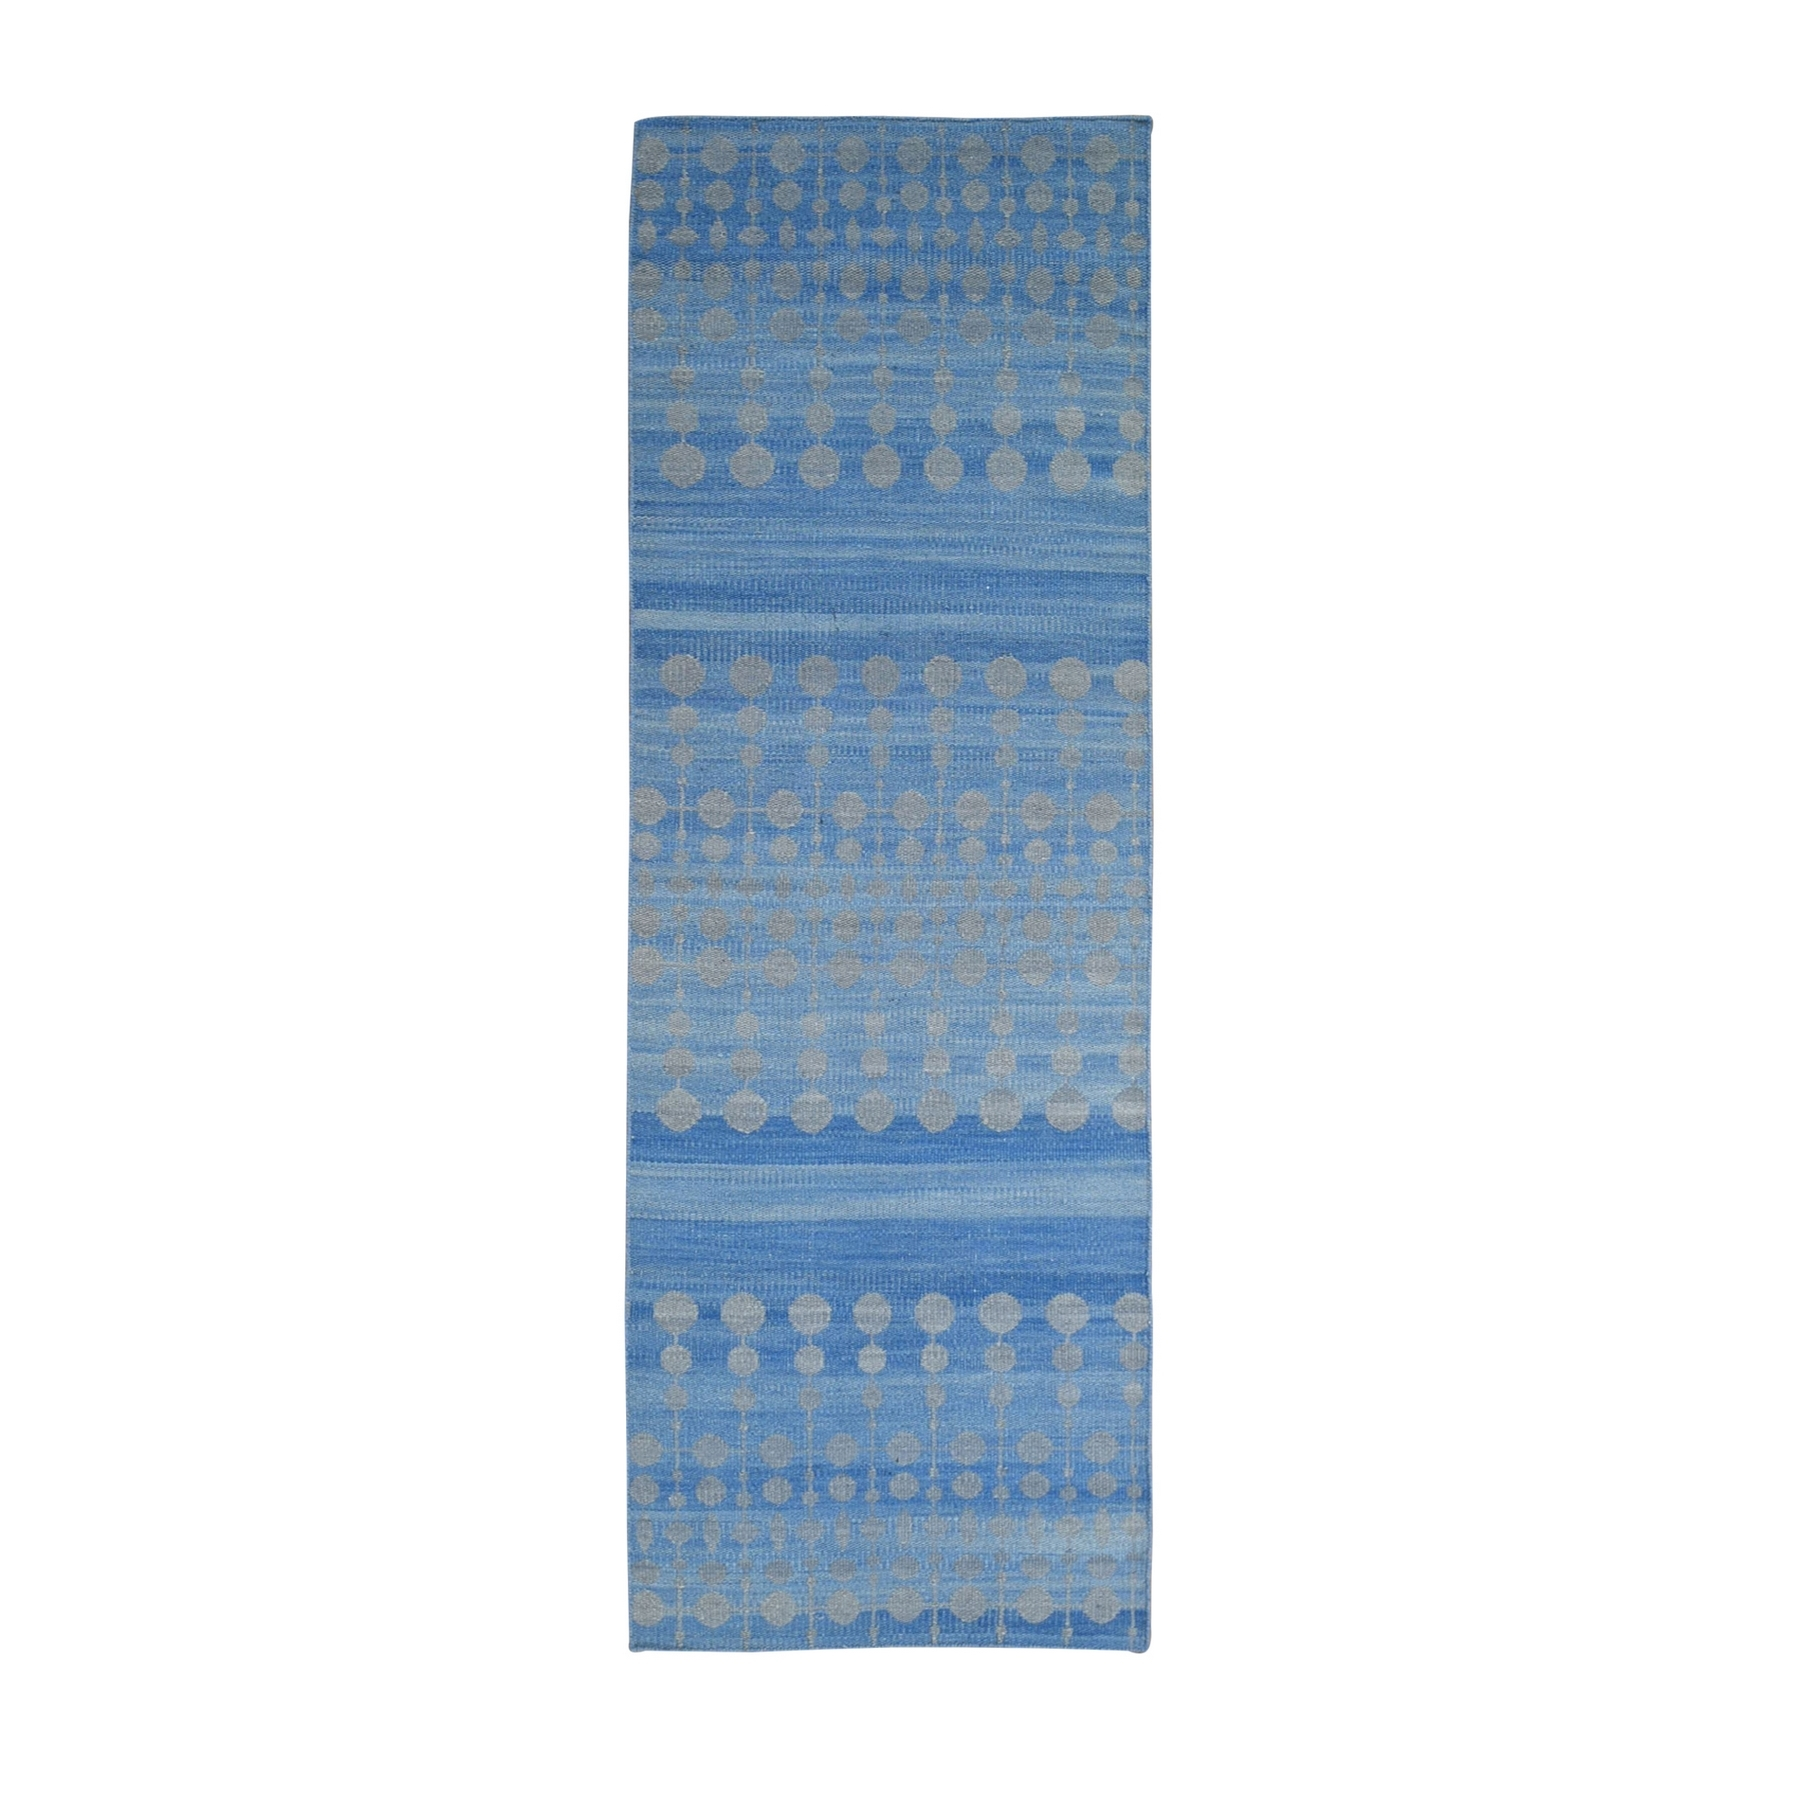 "2'6""x7'8"" Light Blue Hand Woven Flat Weave Dot Design Pure Wool Reversible Kilim Runner Oriental Rug"